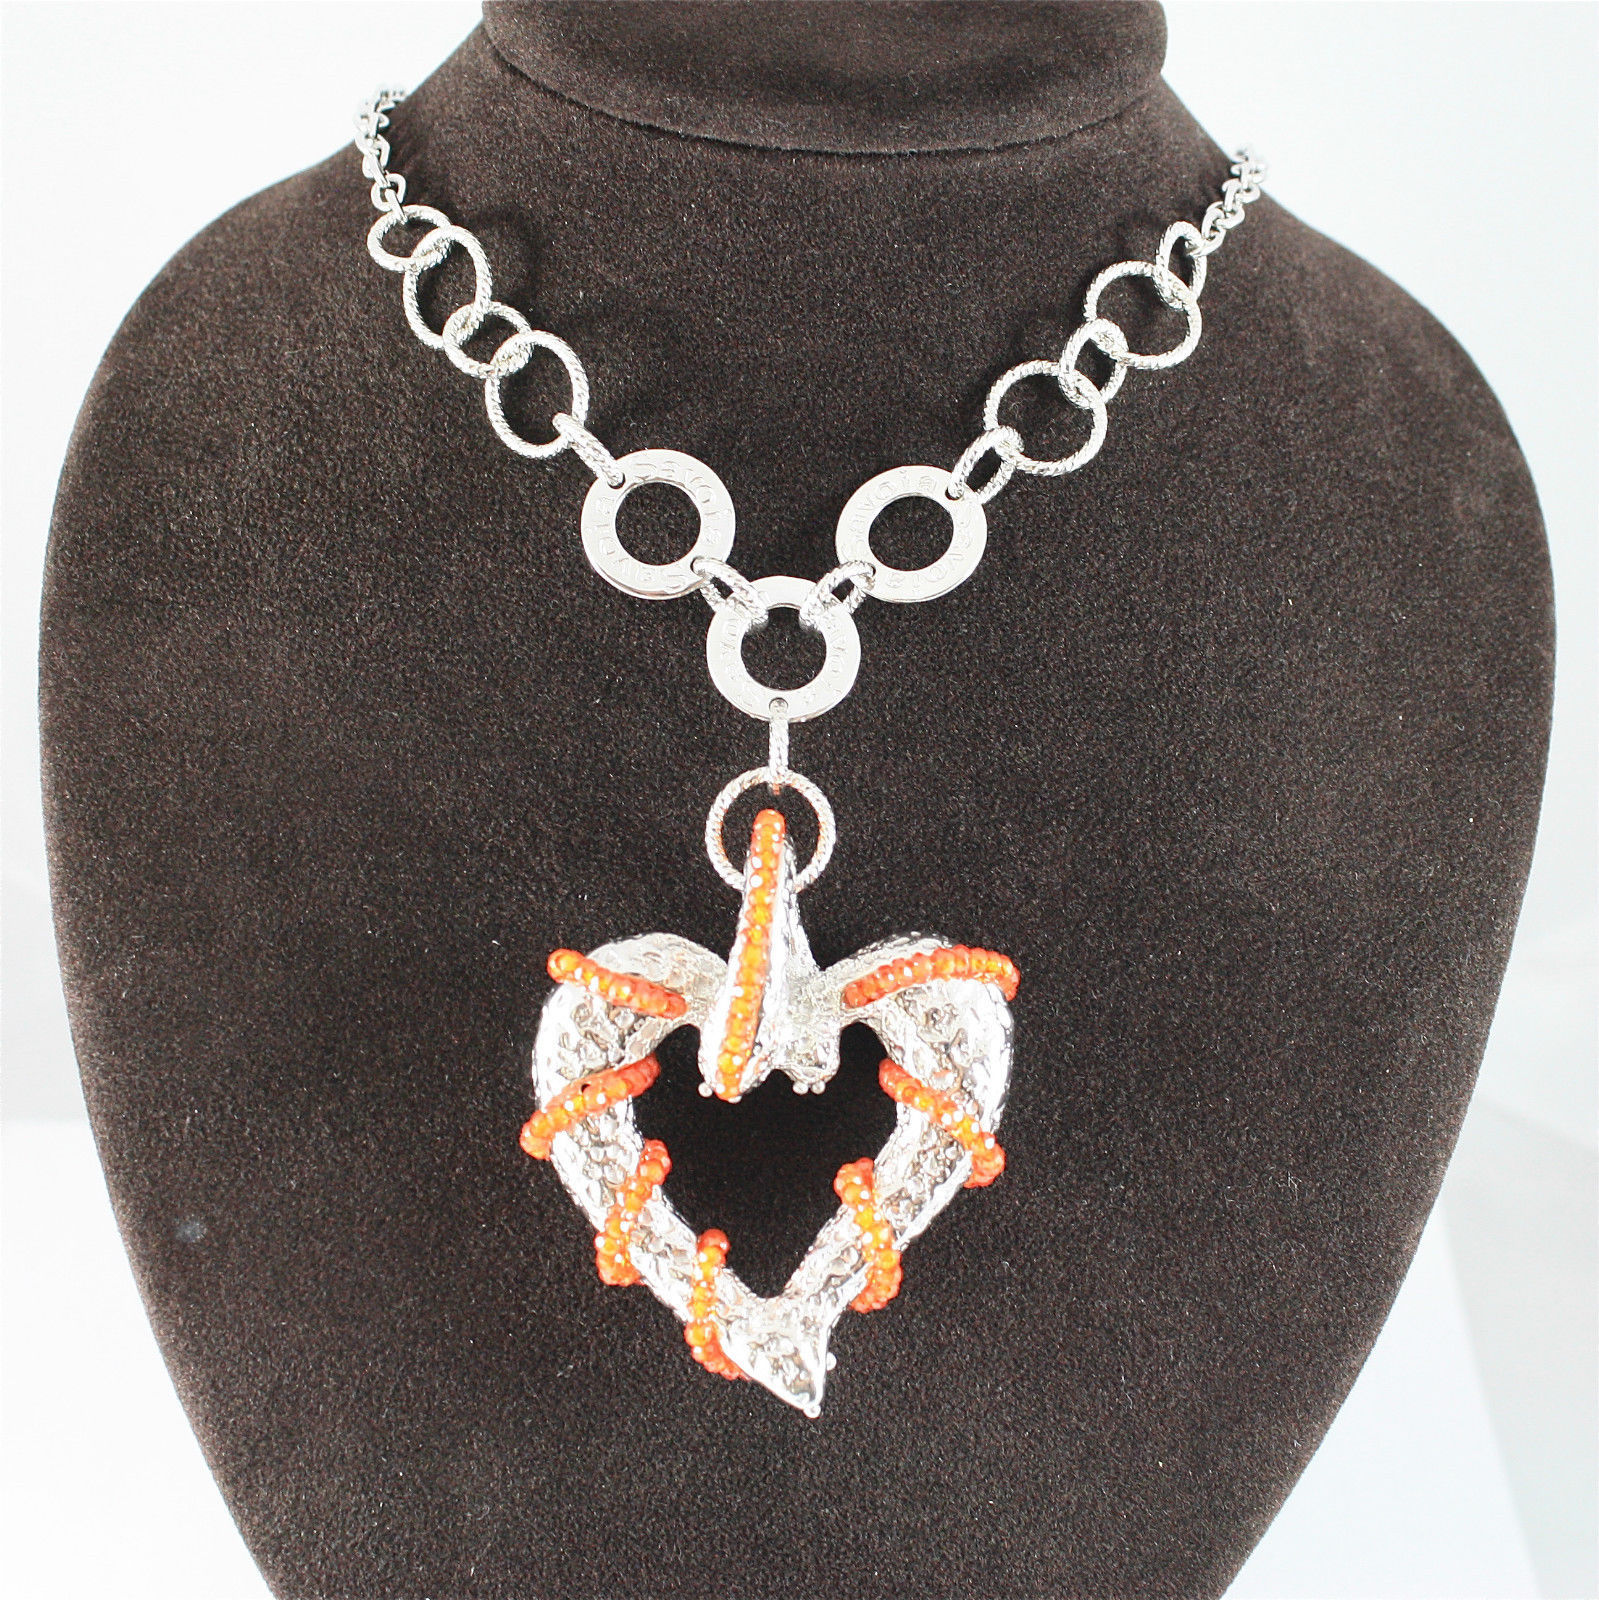 925 RHODIUM SILVER PENDANT WITH FACETED CARNELIAN MADE IN ITALY BY SAVOIA JEWELS